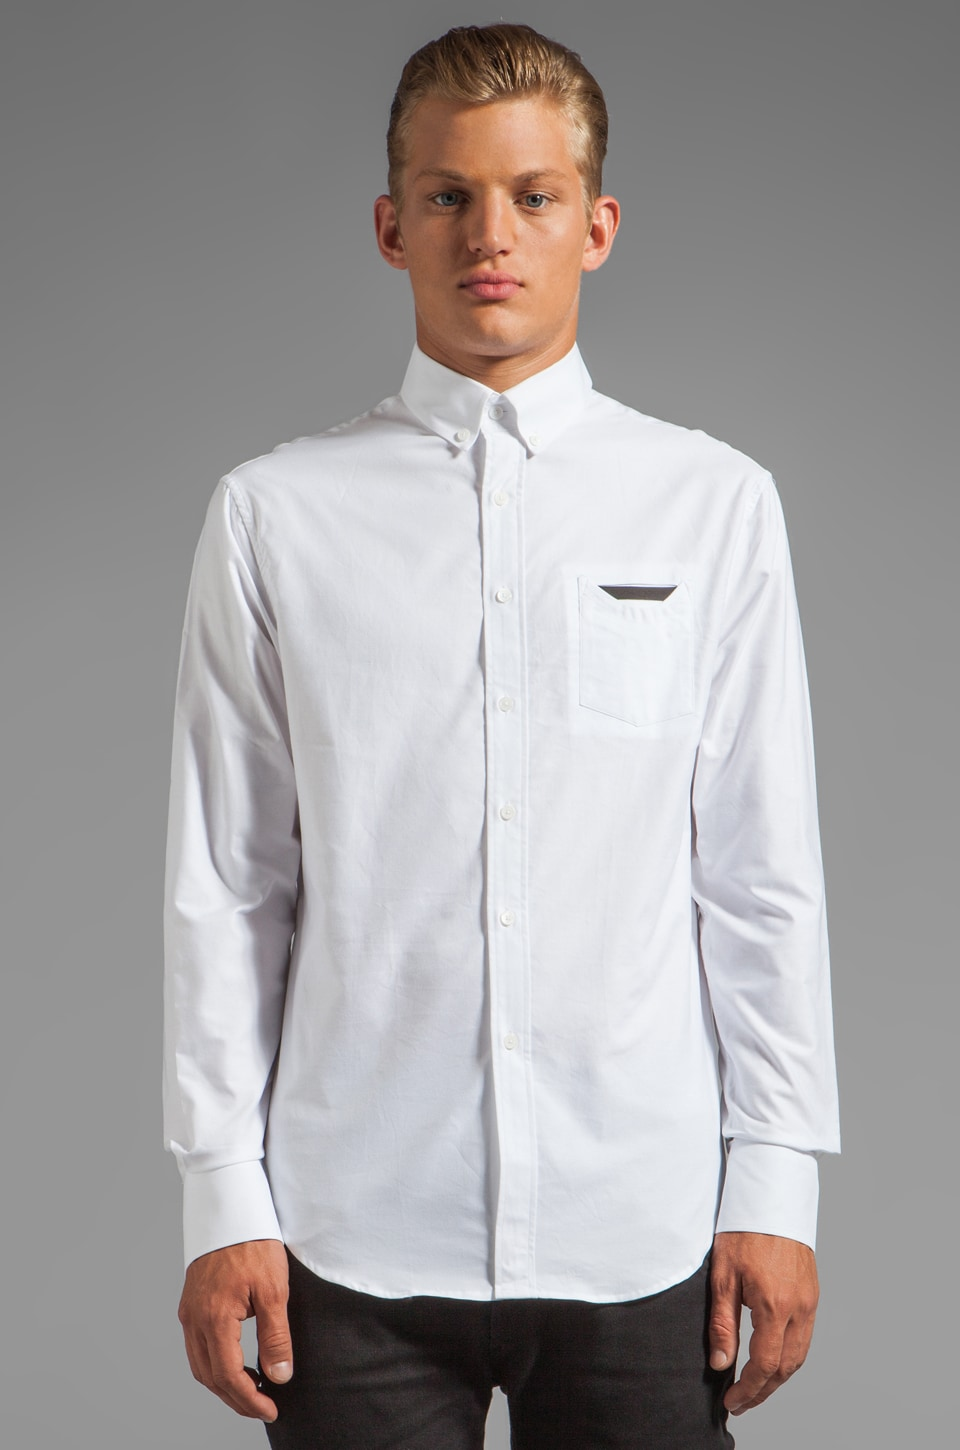 Munsoo Kwon Contrast Pocket Shirt in White